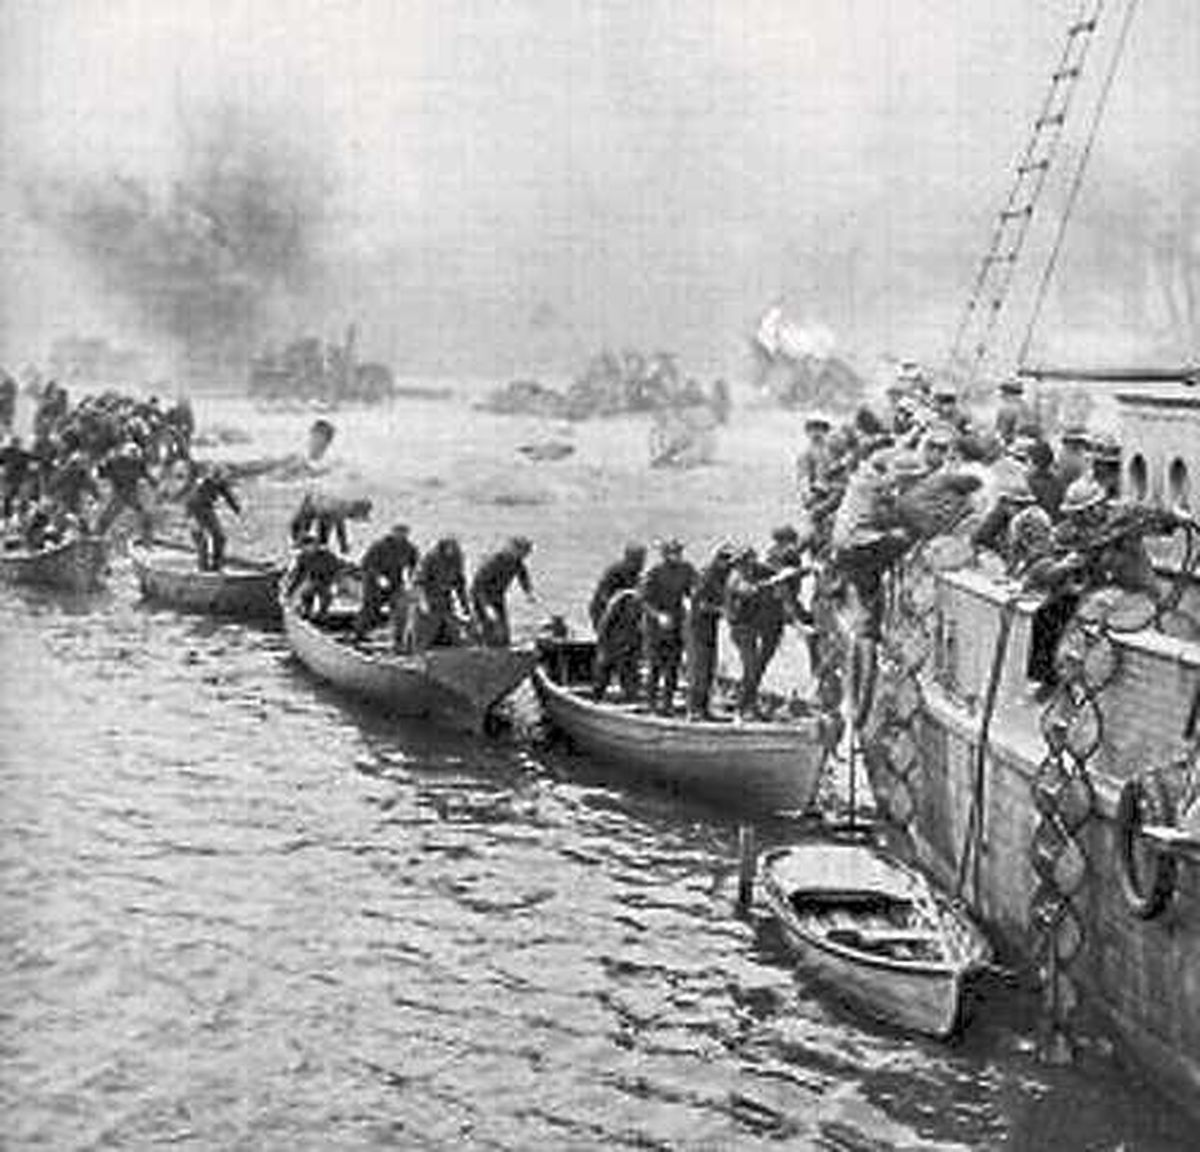 Troops seen climbing on board rescue boats during the evacuation of Dunkirk in June 1940